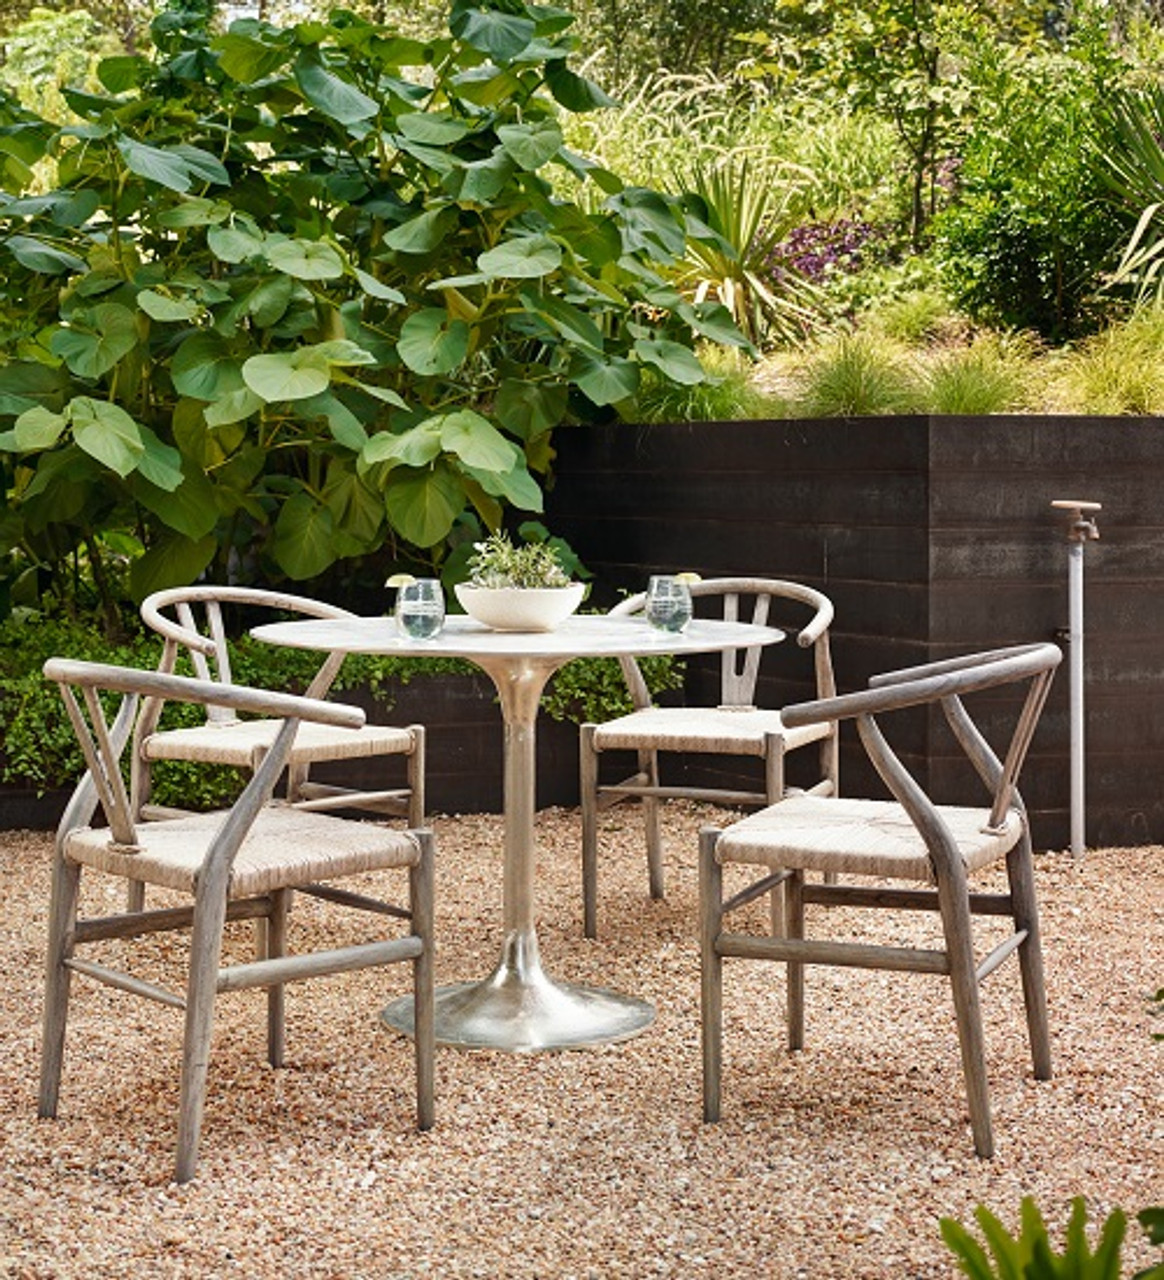 Small Space Patio Furniture: Cool Ideas to Try - Small Space Patio Furniture: Cool Ideas To Try - Zin Home